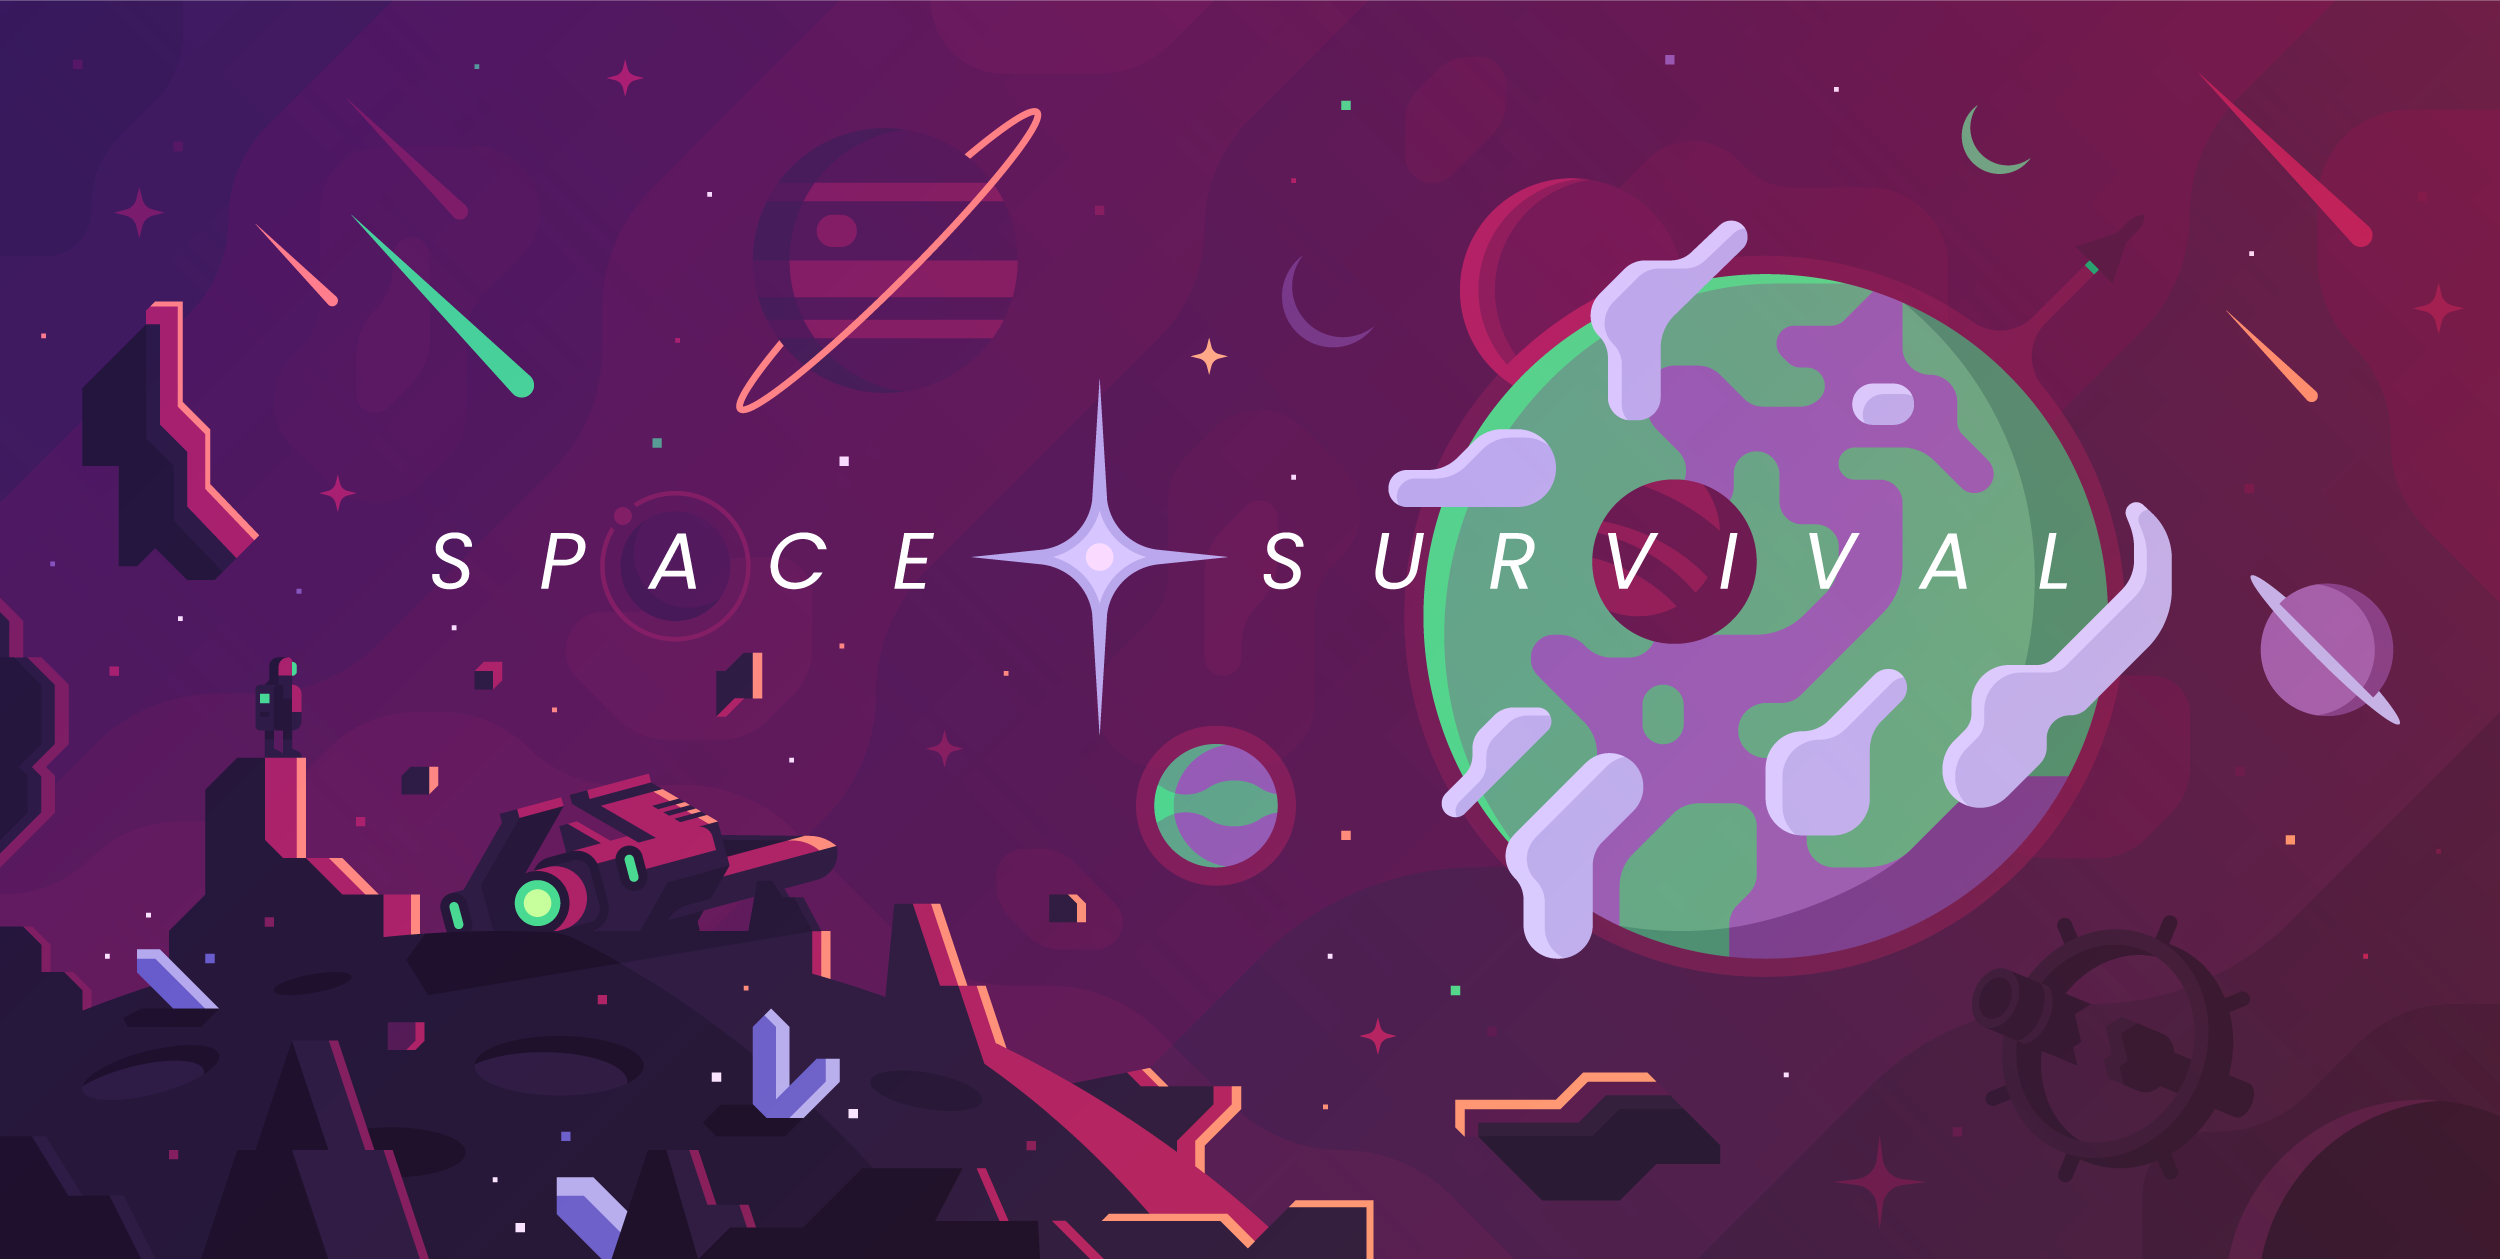 """This key art served to define the game's overall style and story, with """"Space Survival"""" as the working title."""